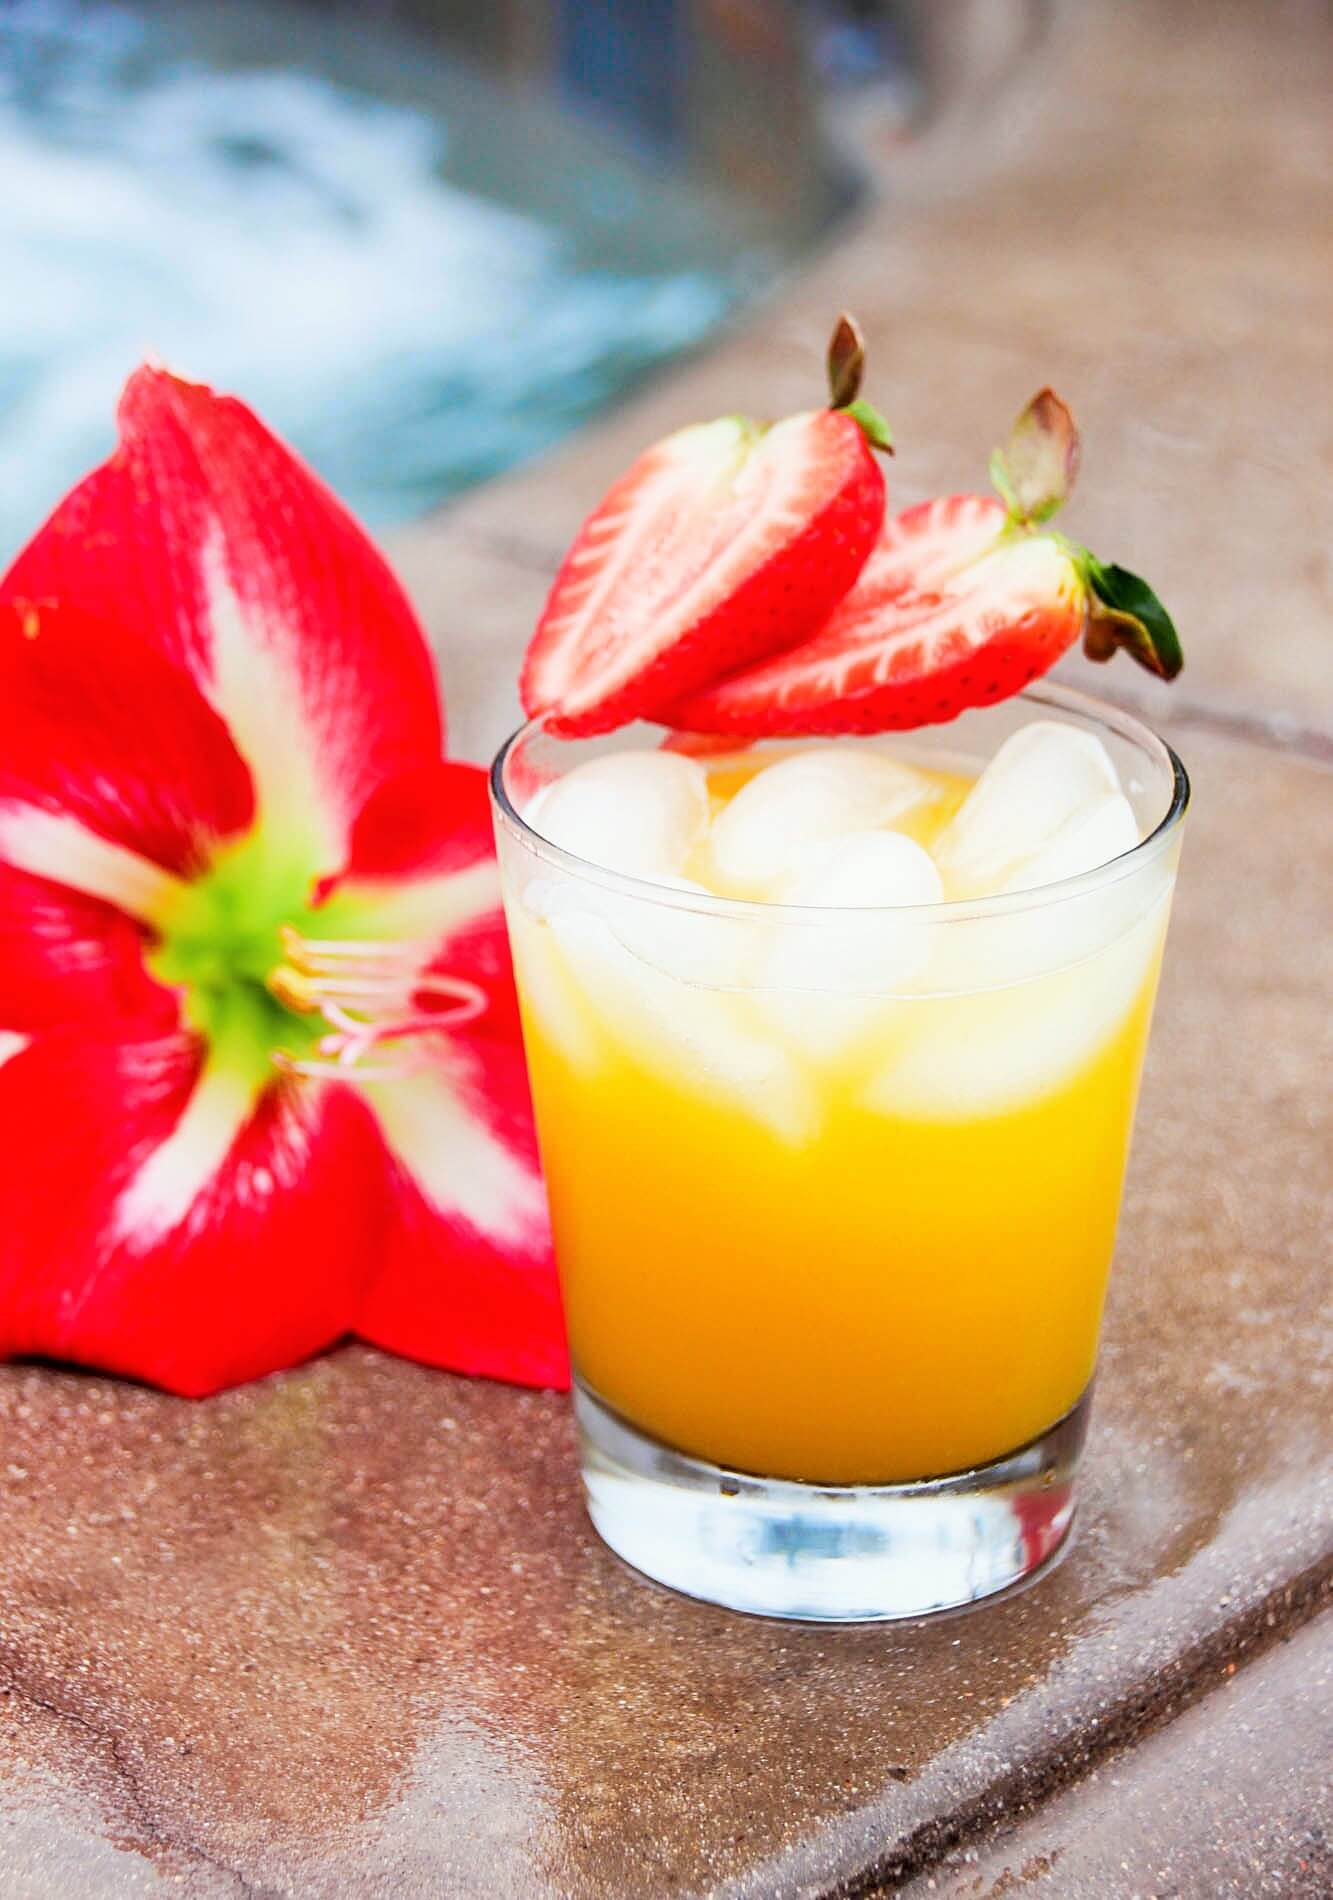 Strawberry & Mango Tequila Punch Recipe